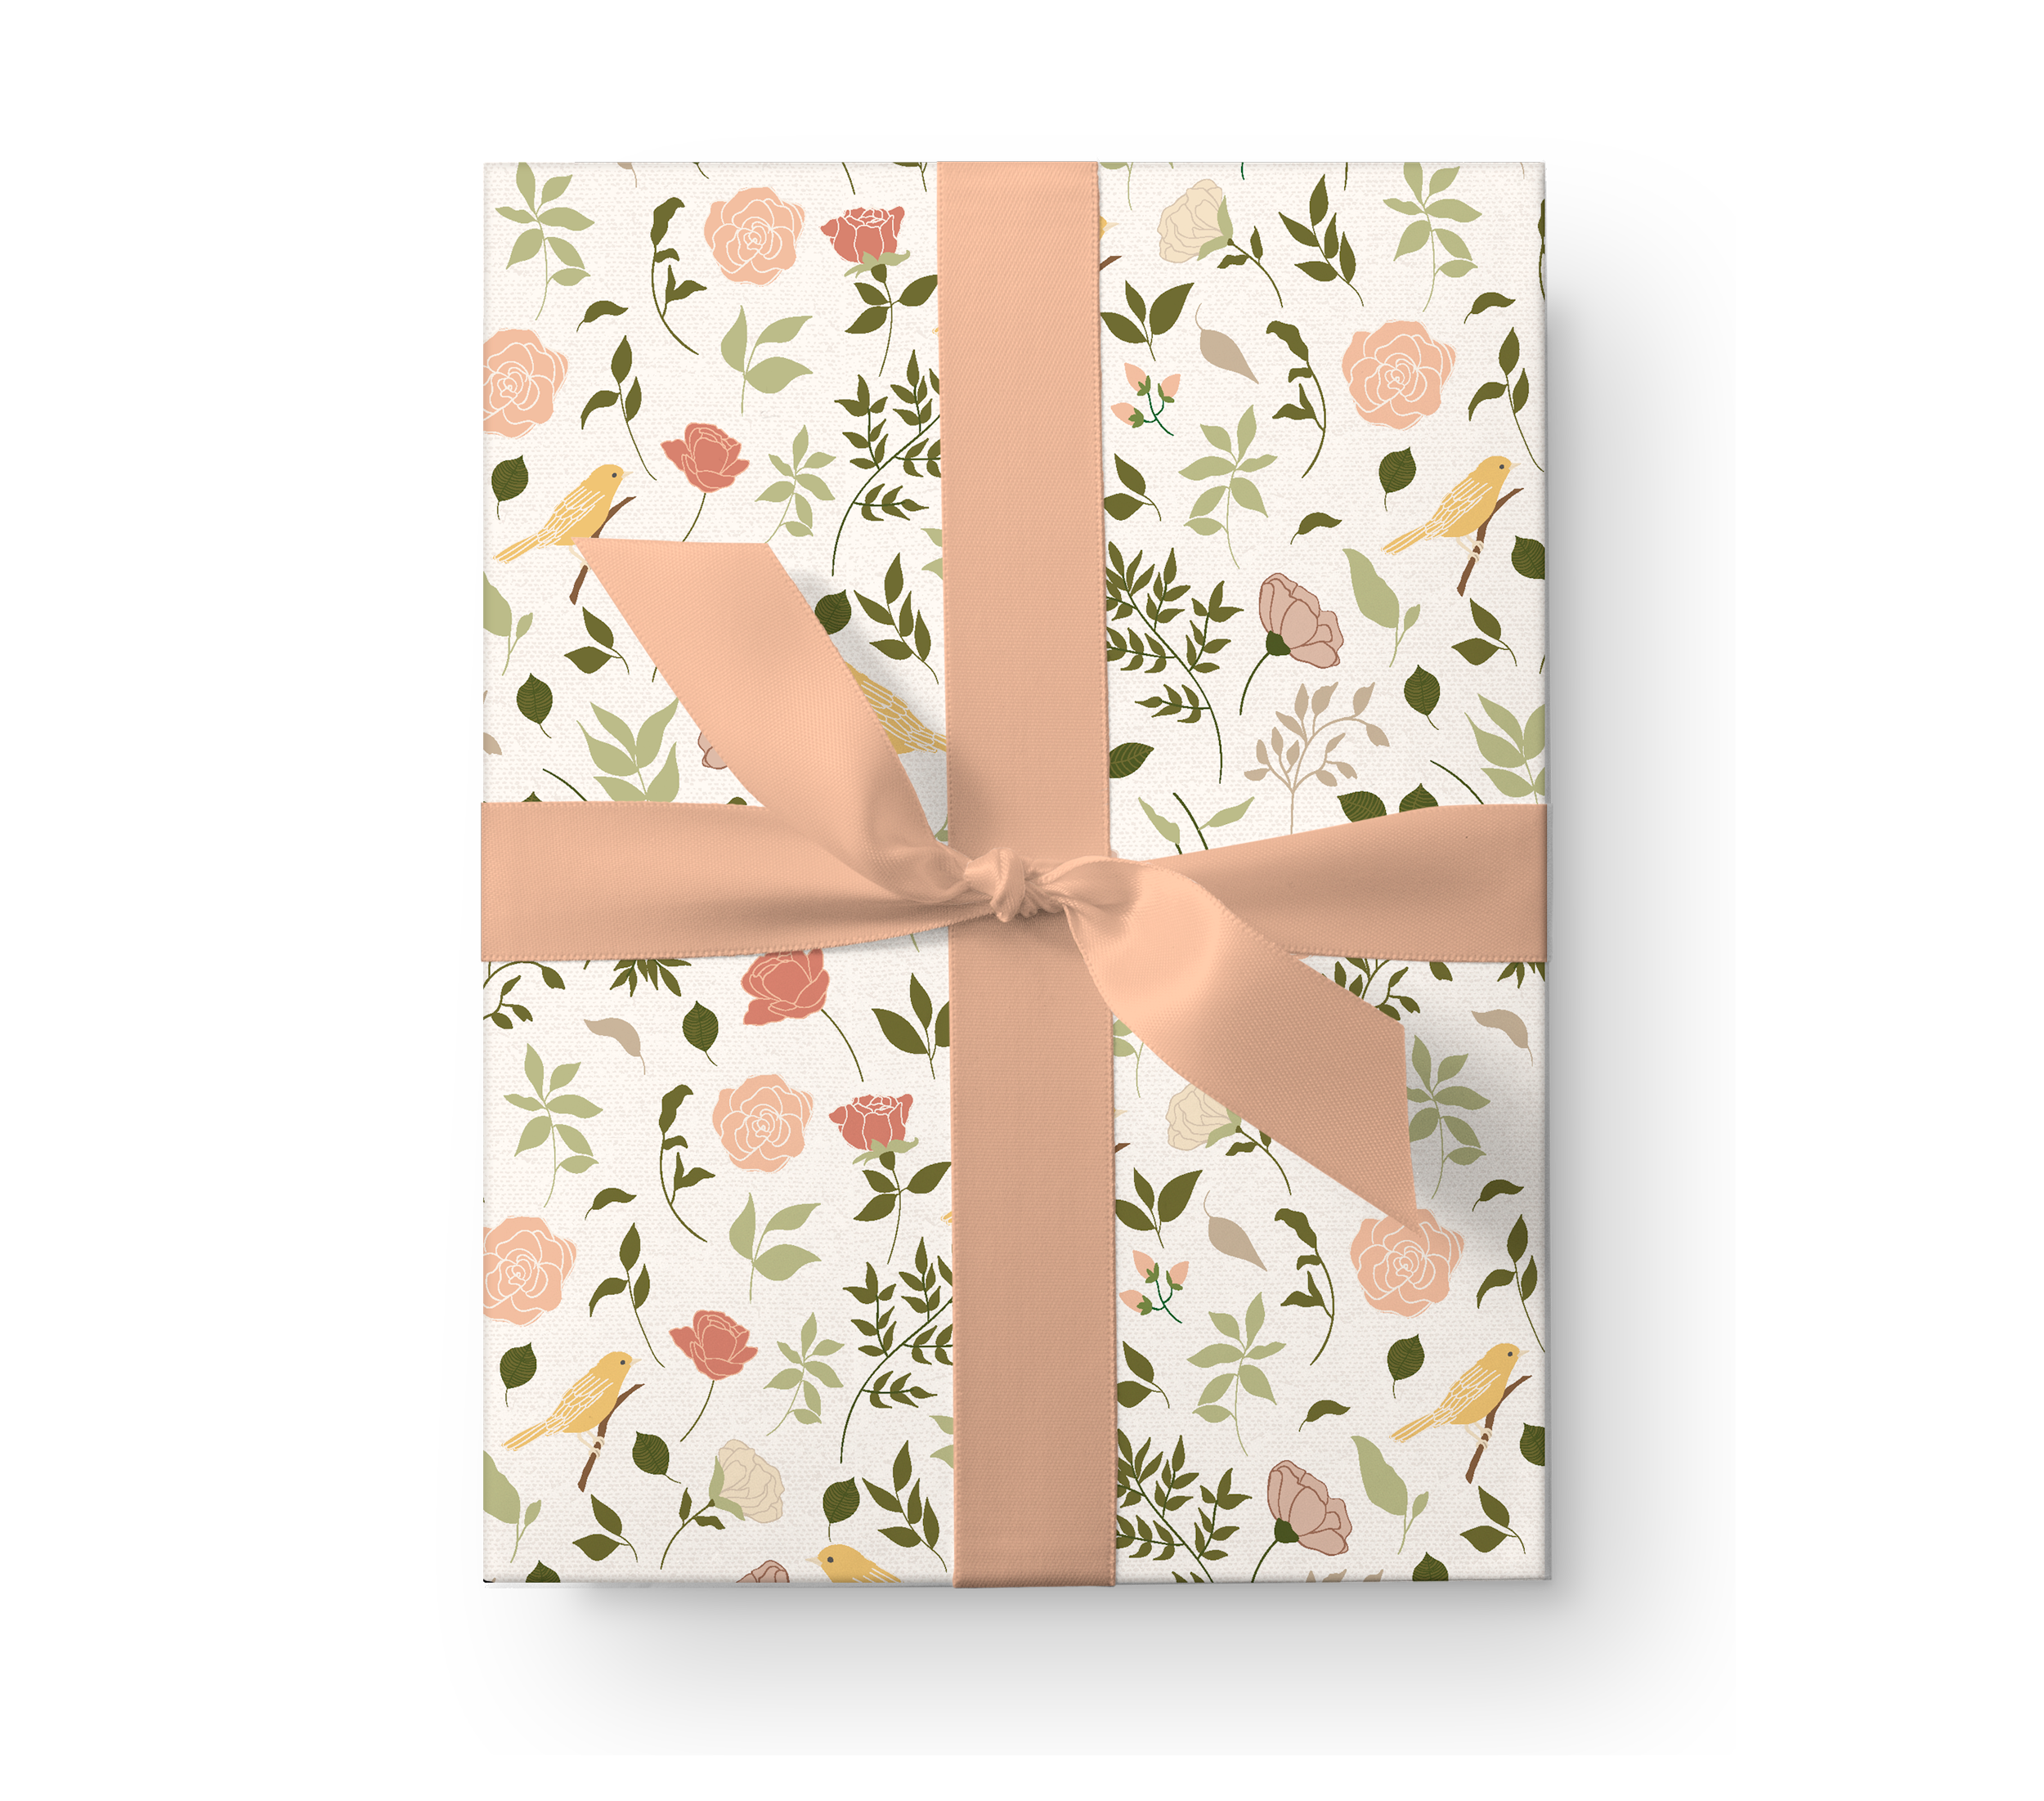 Illustrated wrapping paper gift box with a beautiful rose floral pattern with yellow birds on a cream background.